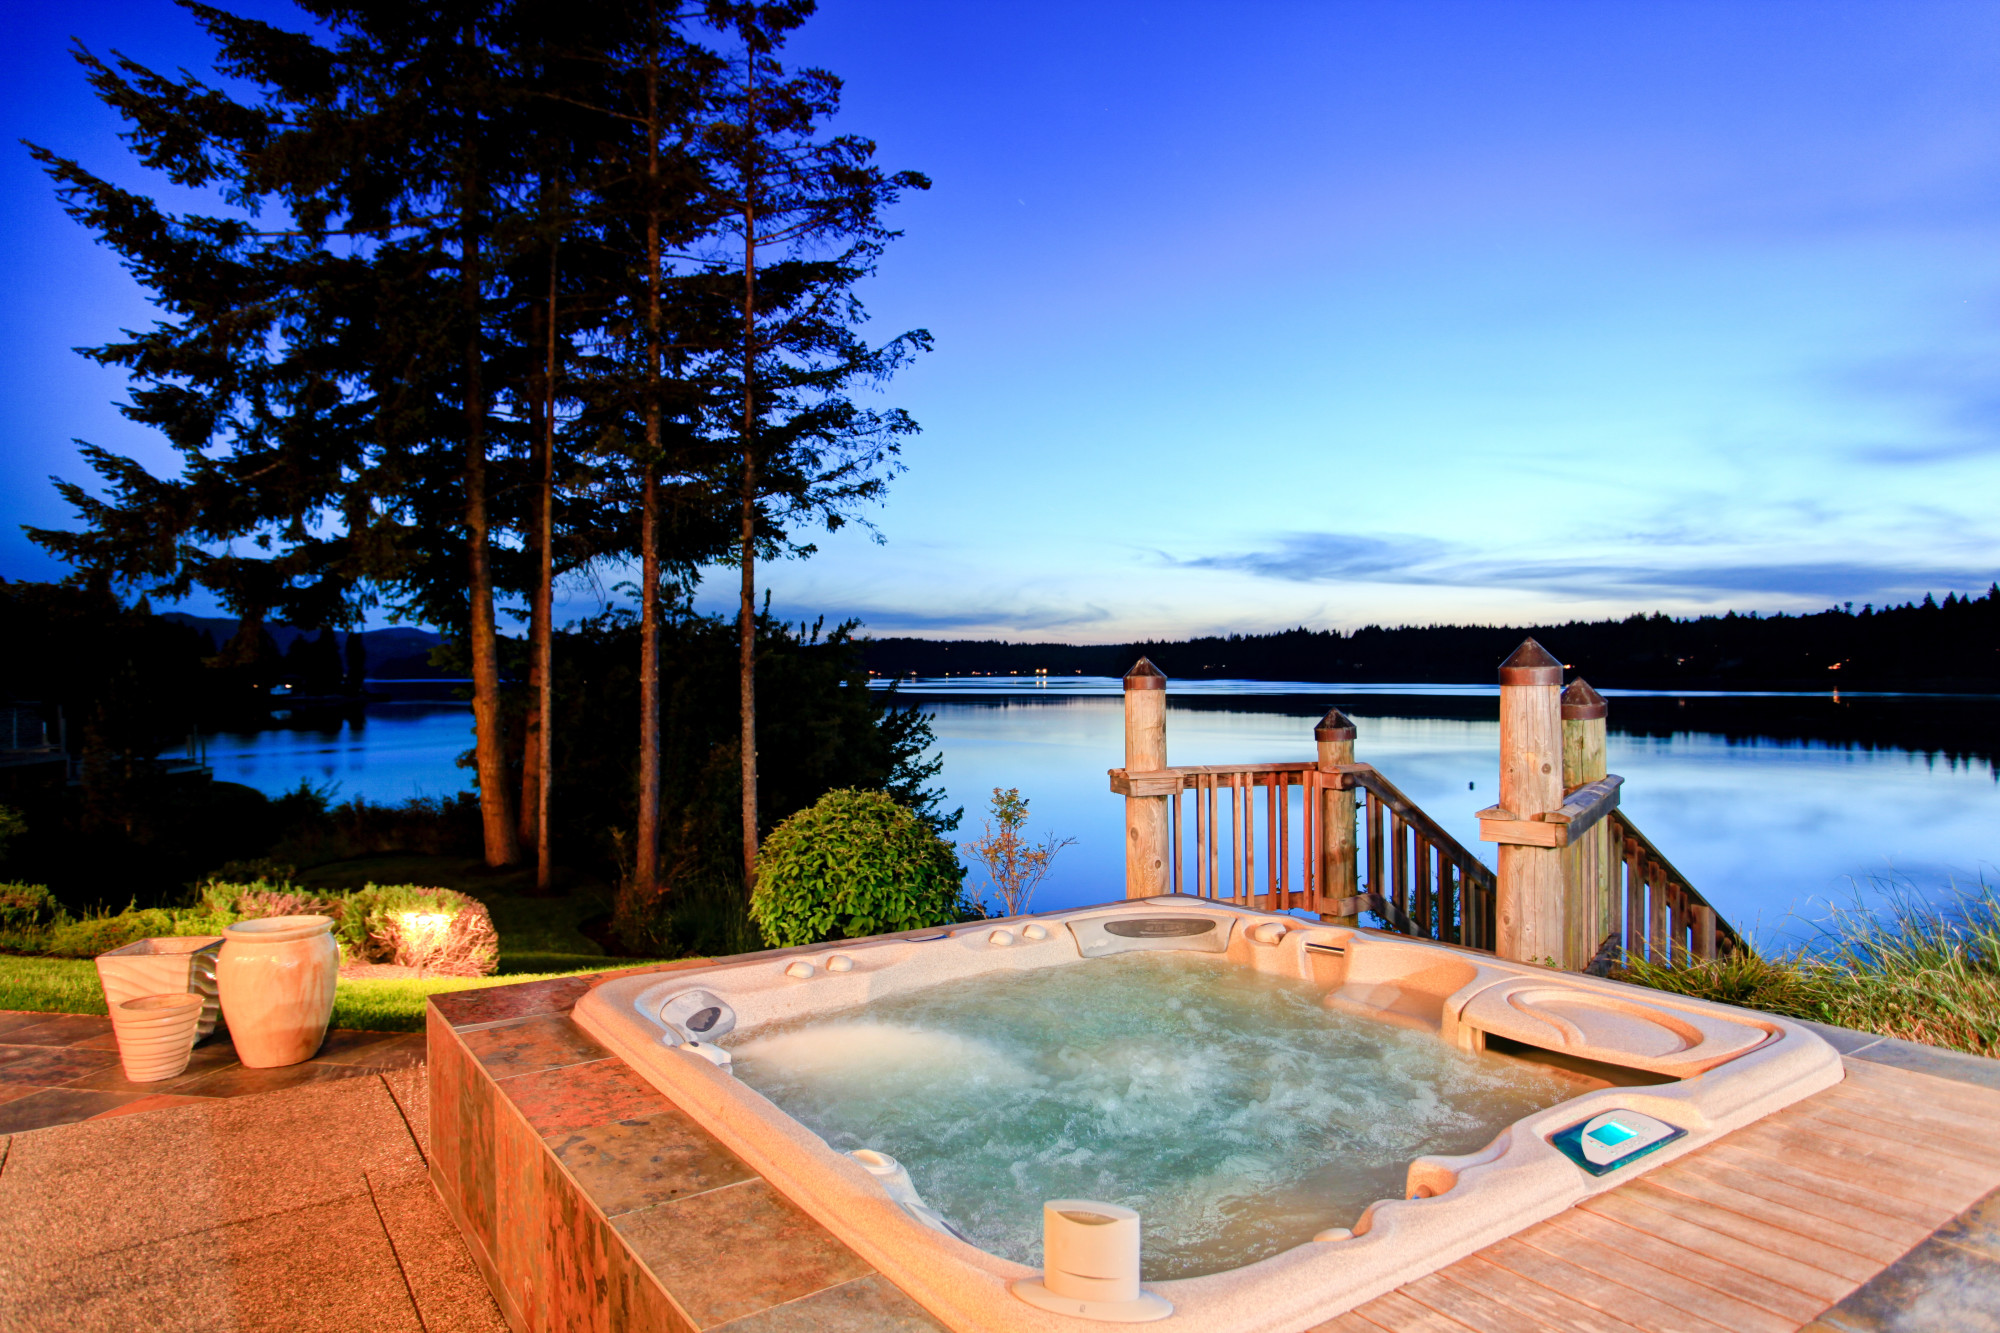 Hot Tub on a Backyard Overlooking a Lake